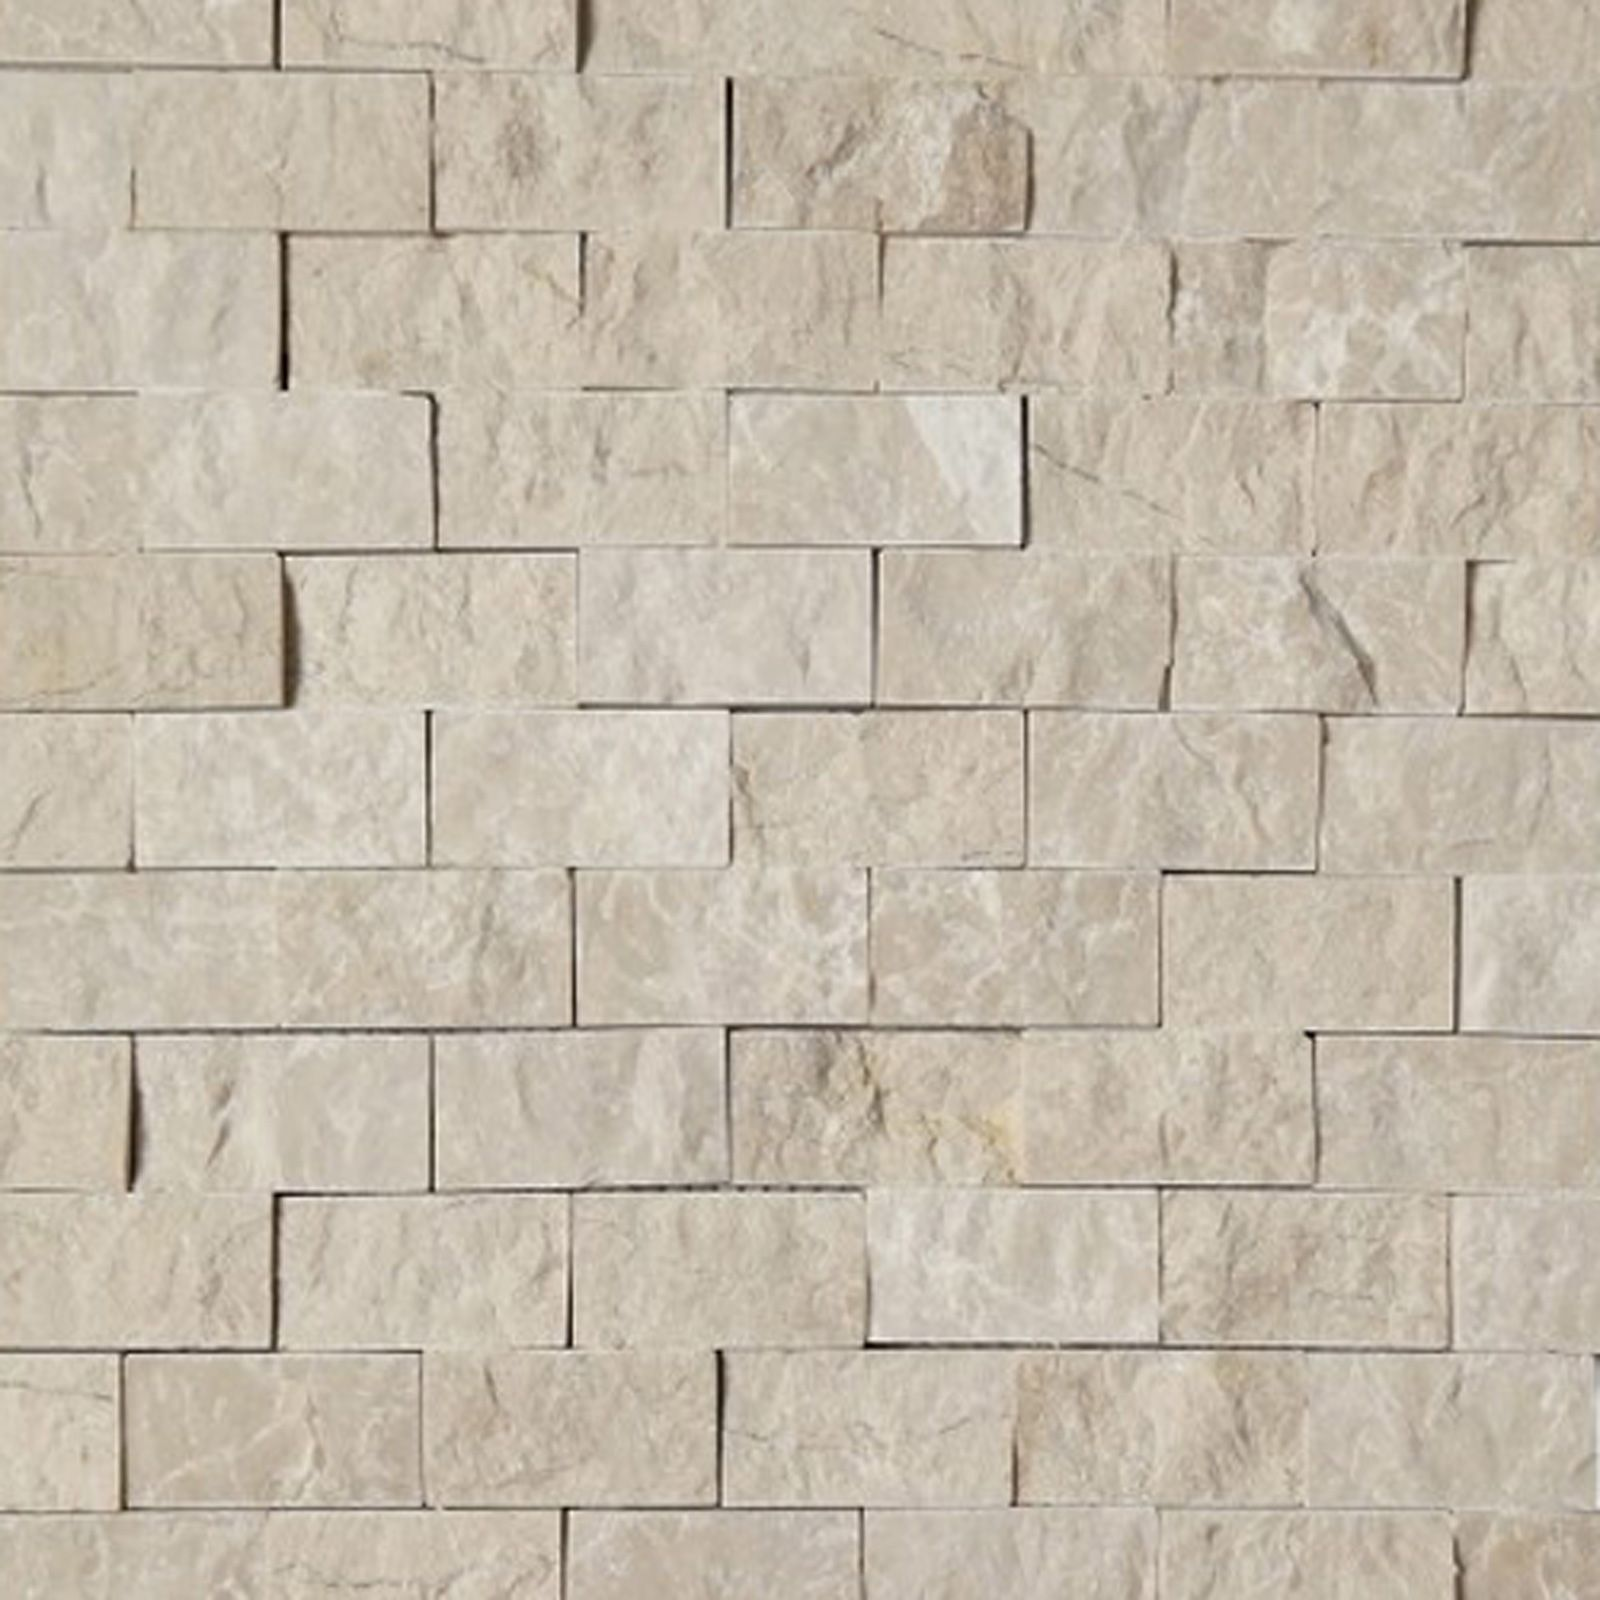 1 x 2 split face mosaic tile beige marble honed kitchen backsplash 1 x 2 split face mosaic tile beige marble honed dailygadgetfo Images